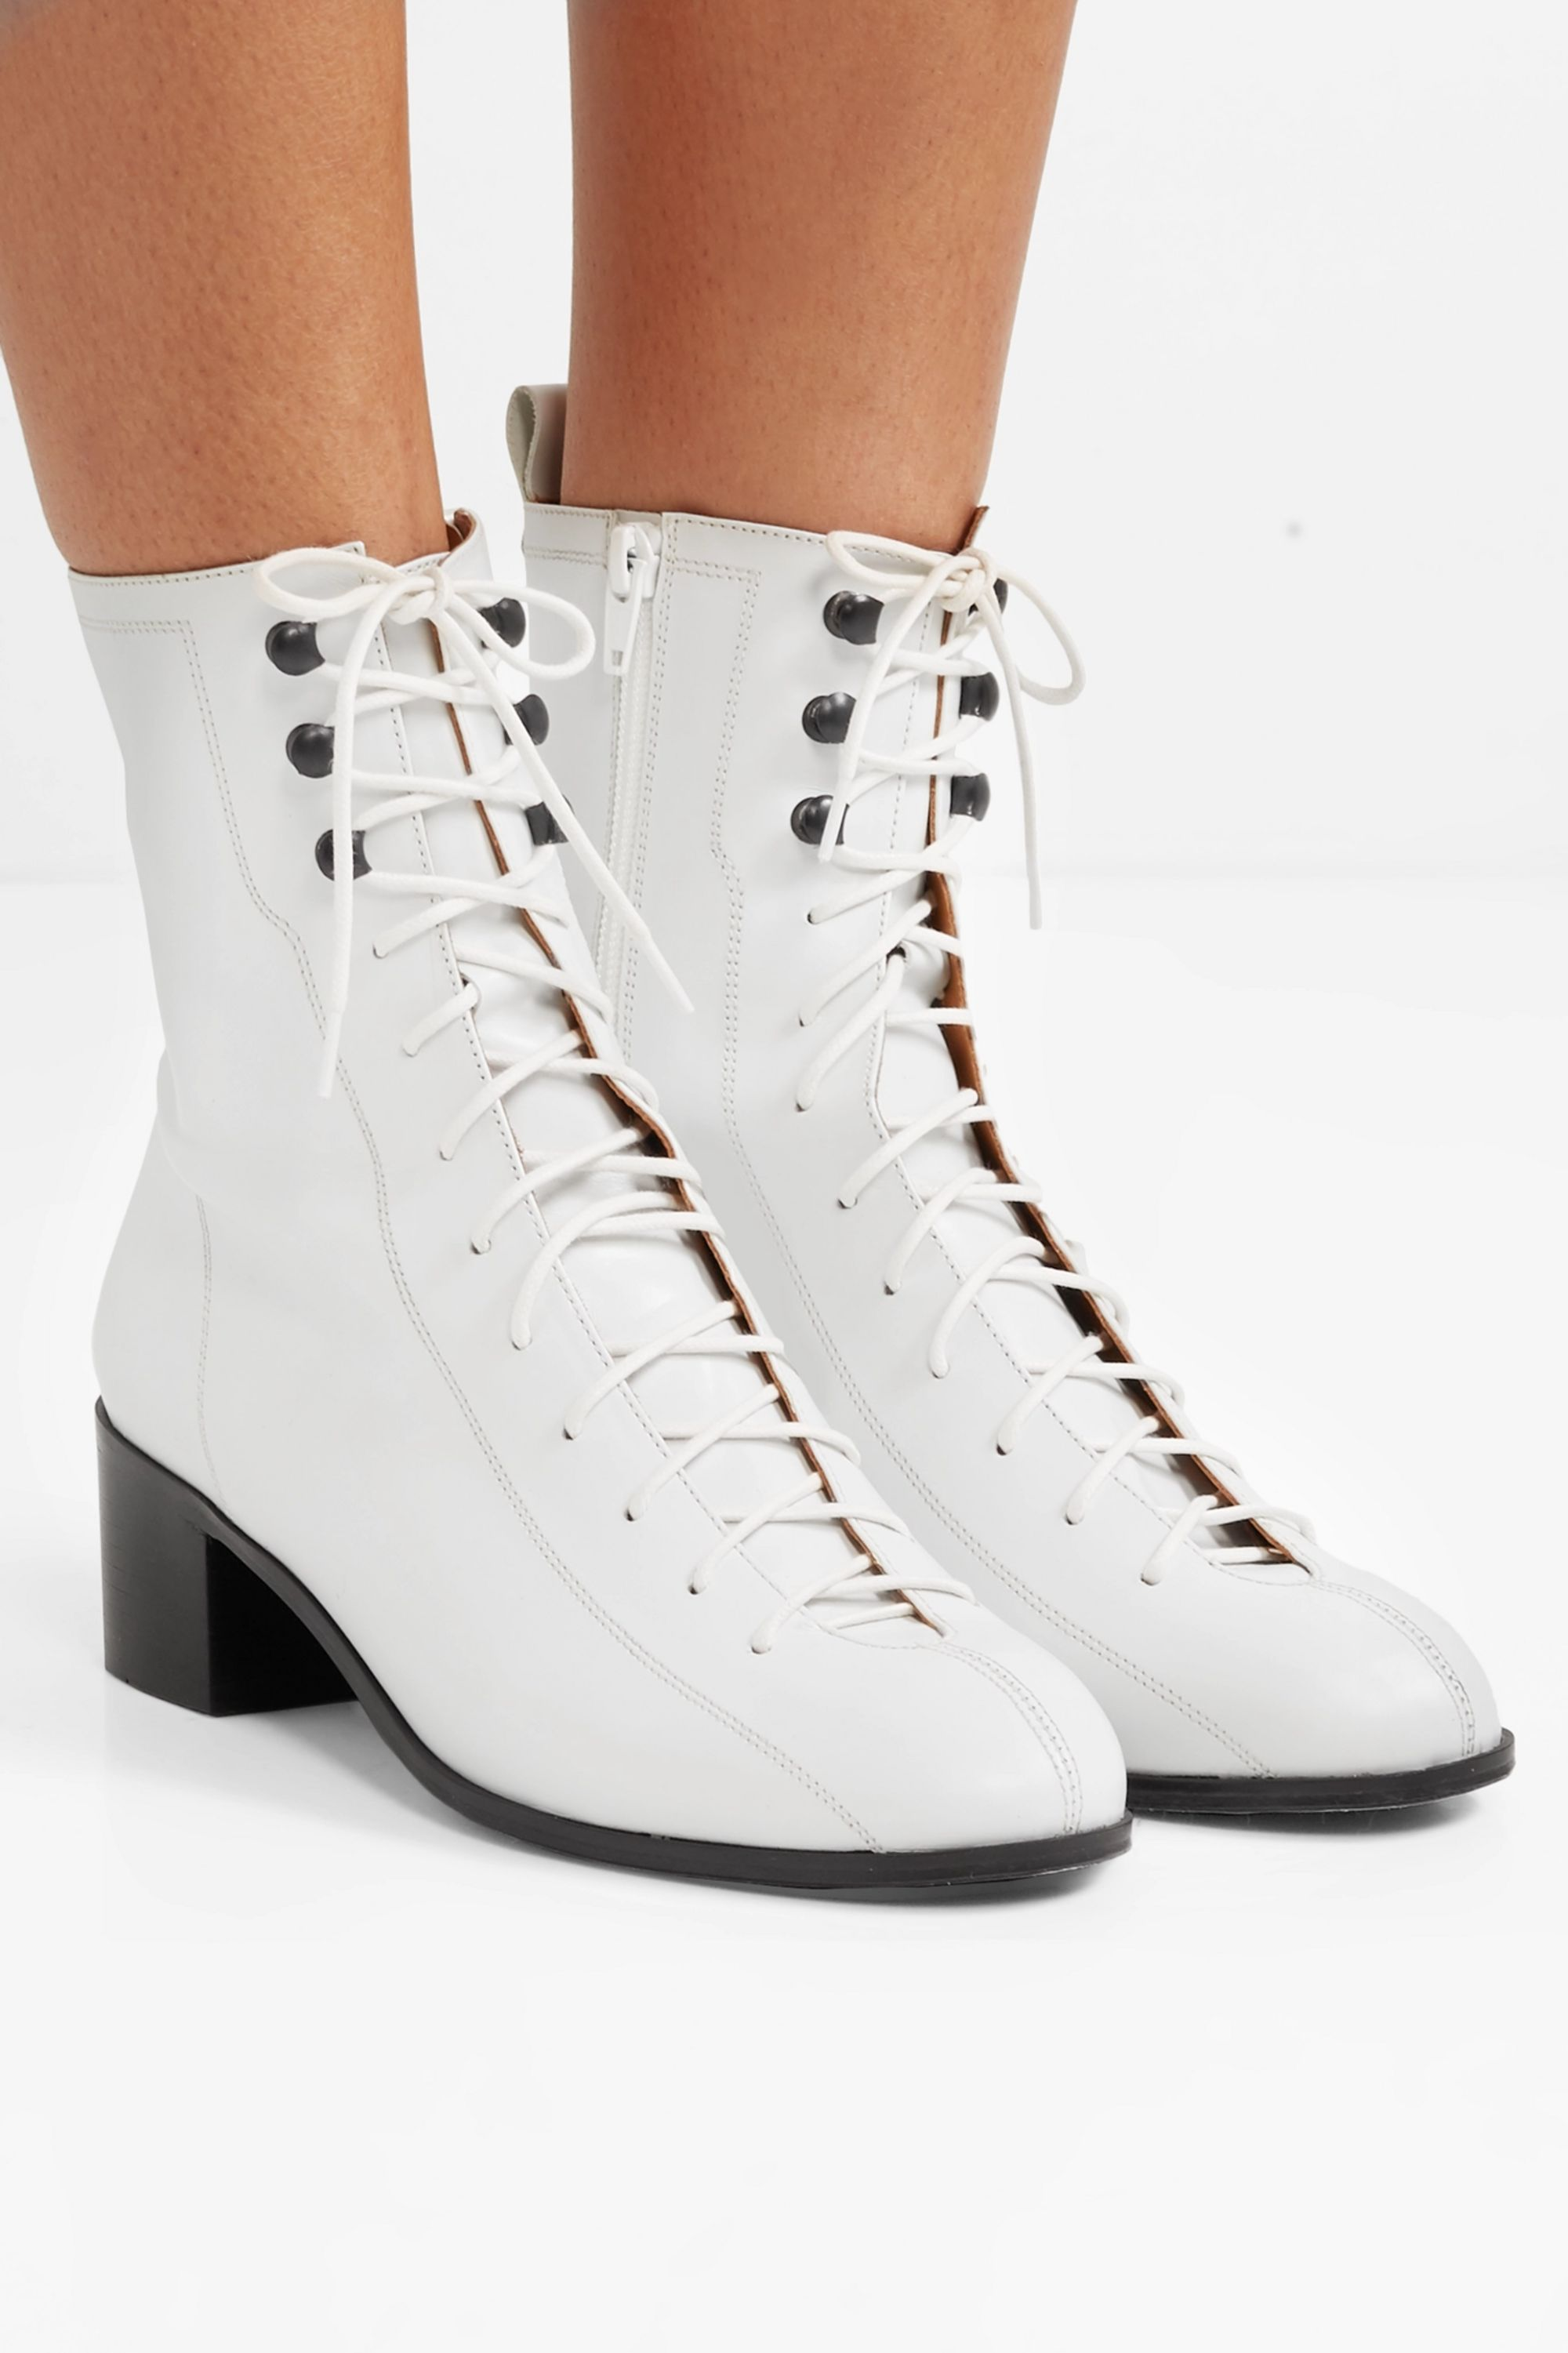 White Bota lace-up leather ankle boots